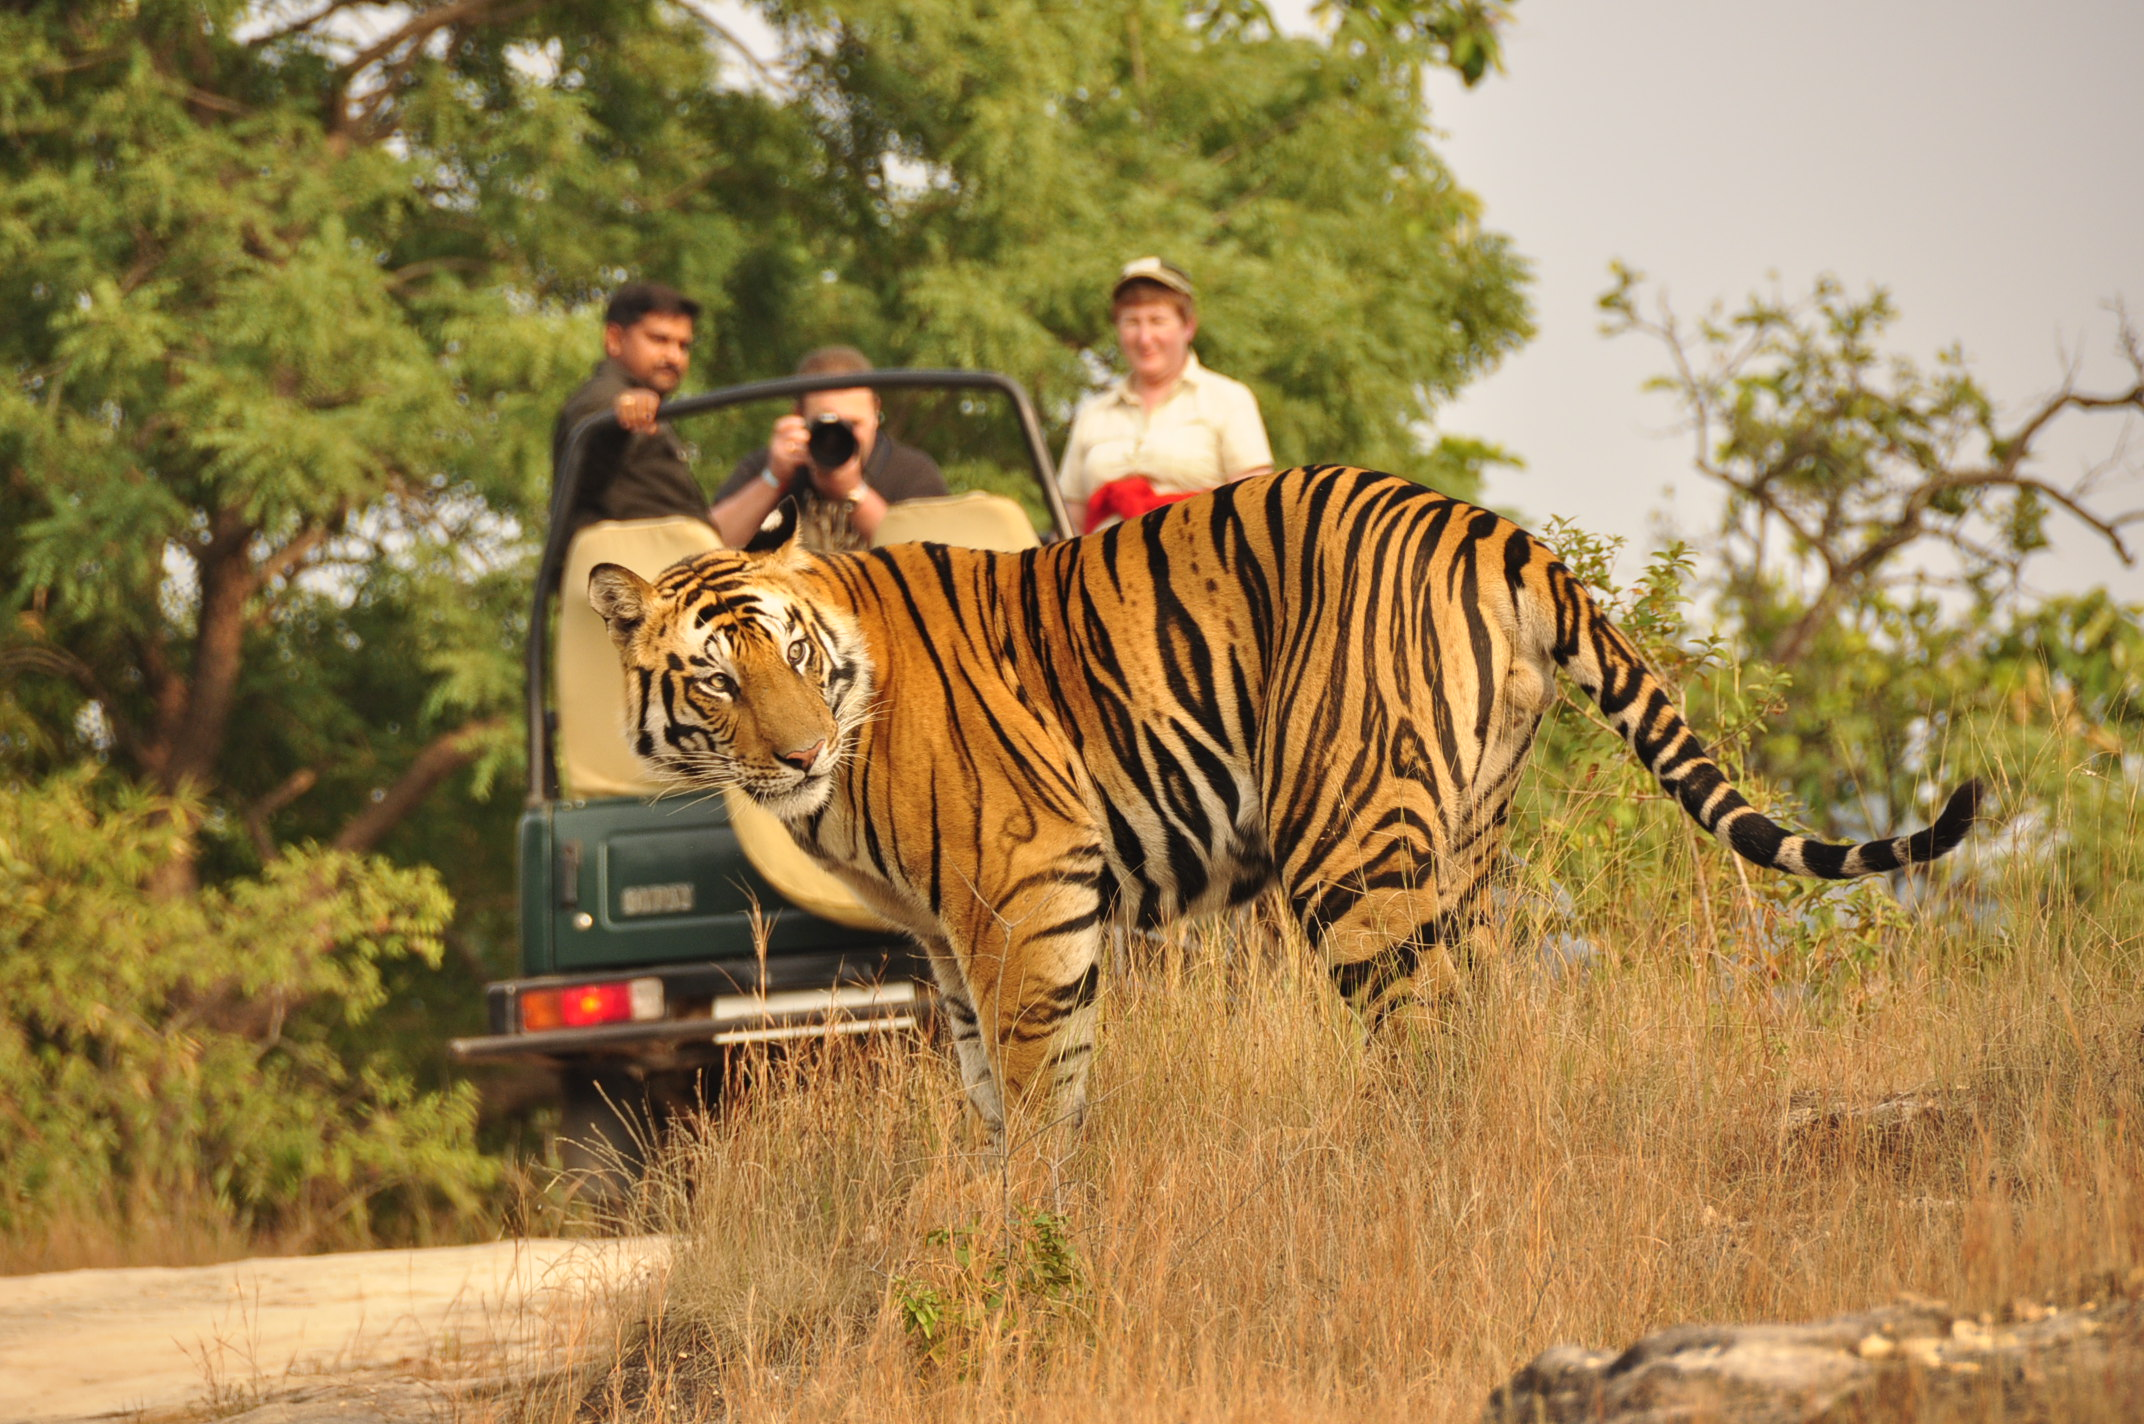 Pench India  city pictures gallery : Tiger Safari Tour India Ranthambore, Bandhavgarh, Kanha, Pench